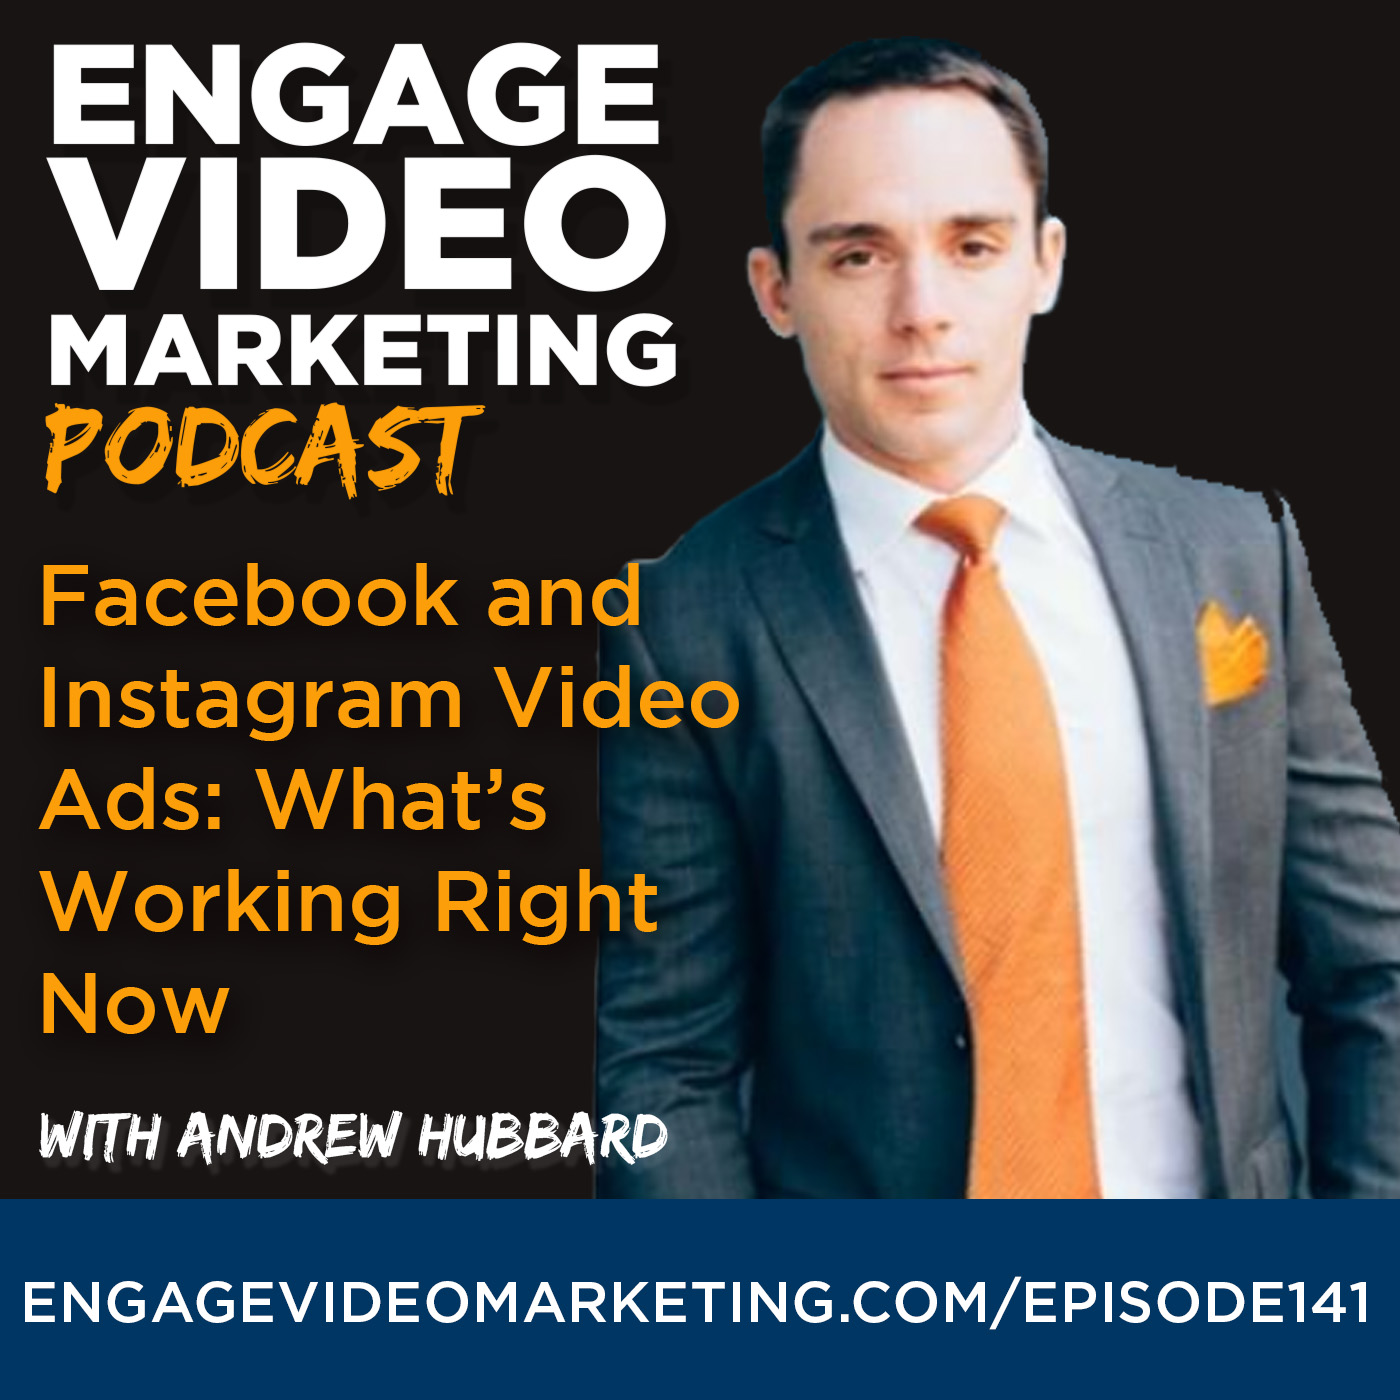 Facebook and Instagram Video Ads: What's Working Right Now with Andrew Hubbard